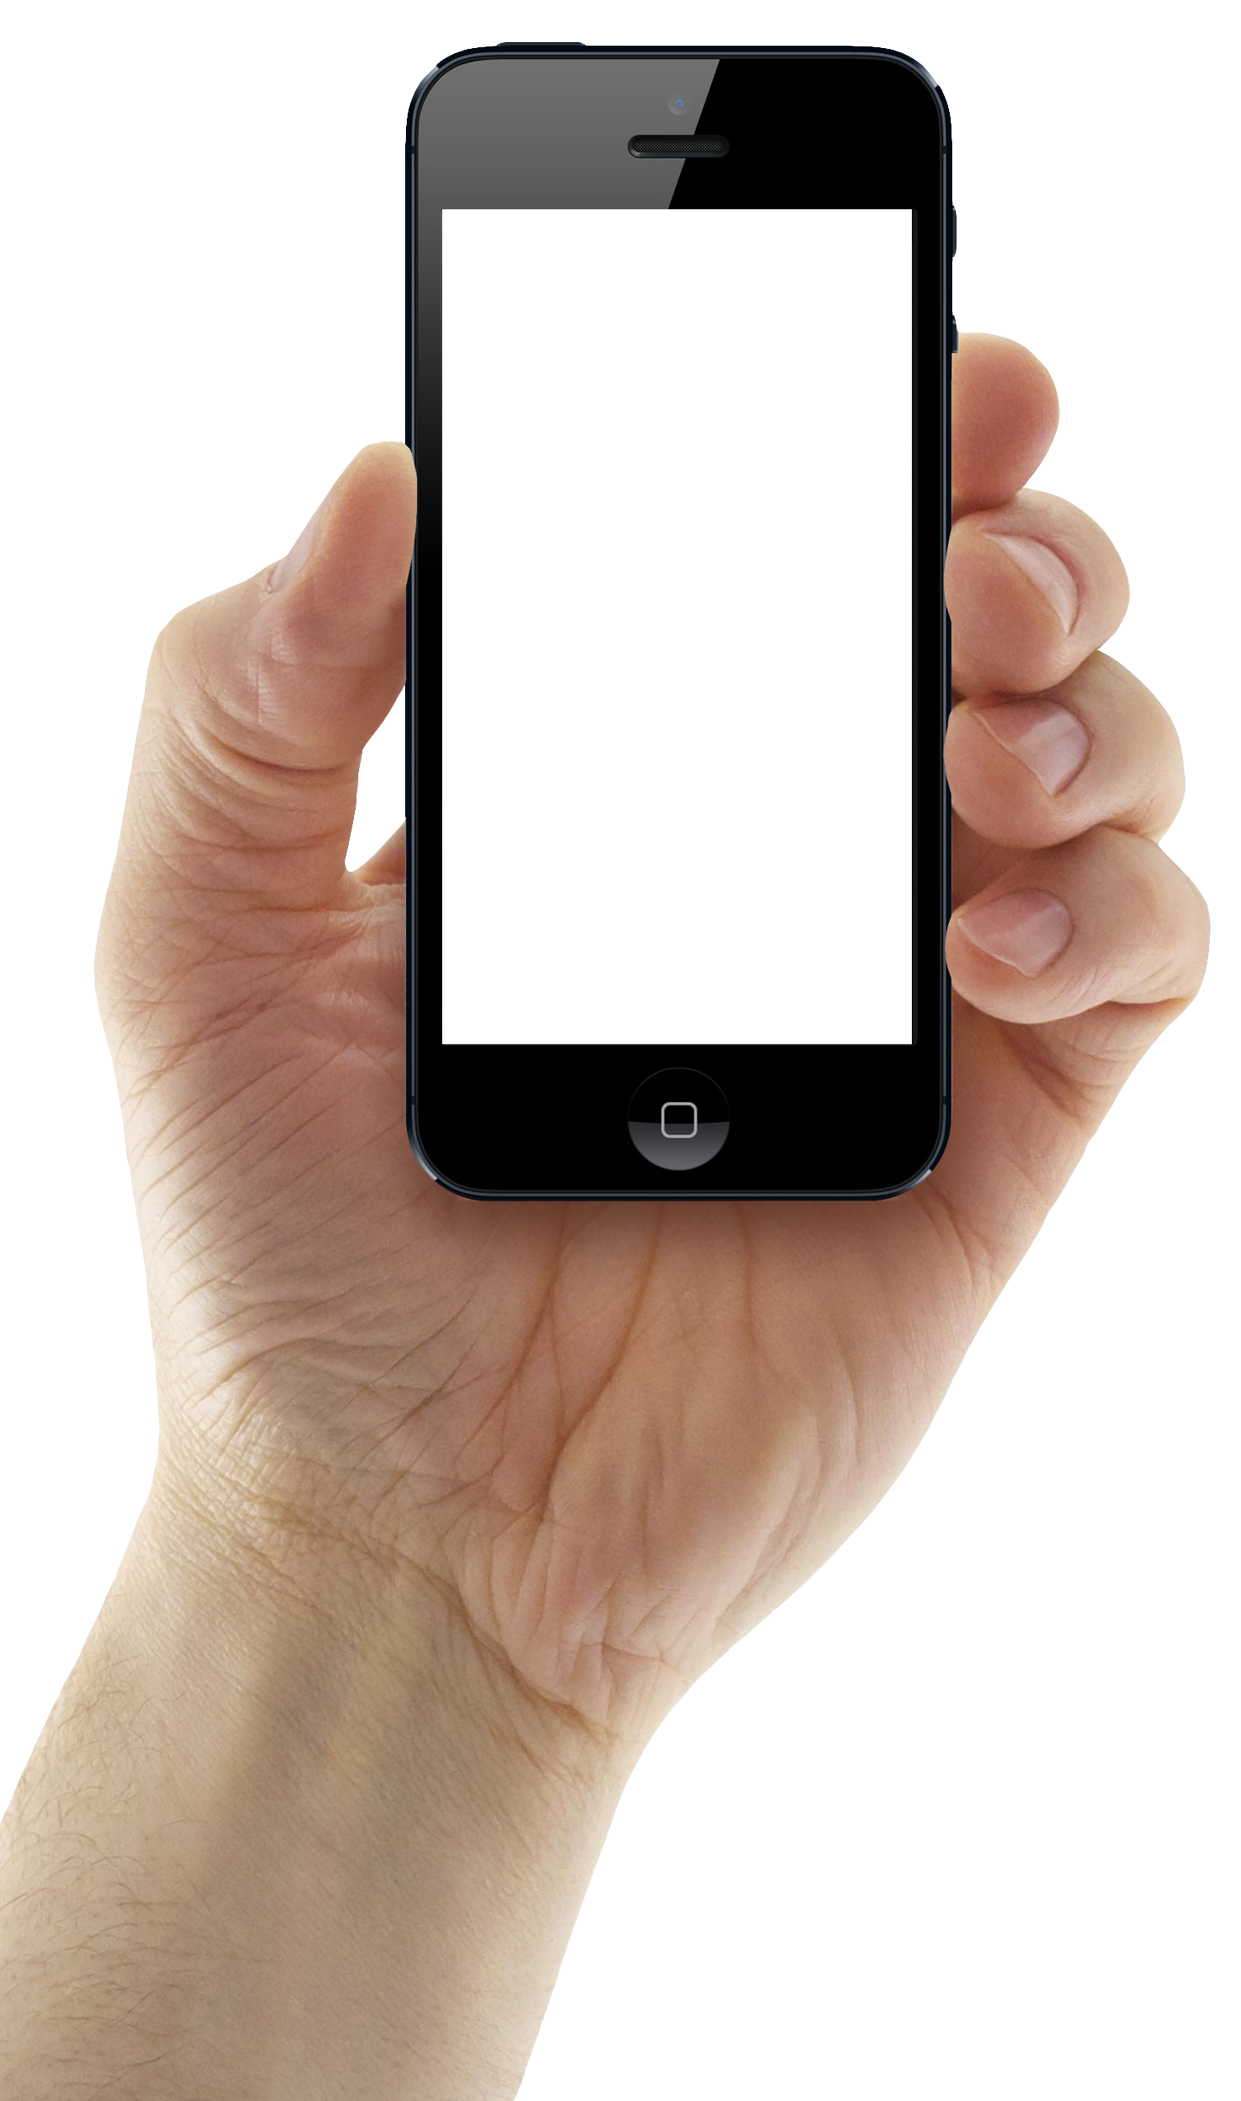 Smartphone Mobile App Hand Iphonepng Holding Pngpix PNG Image